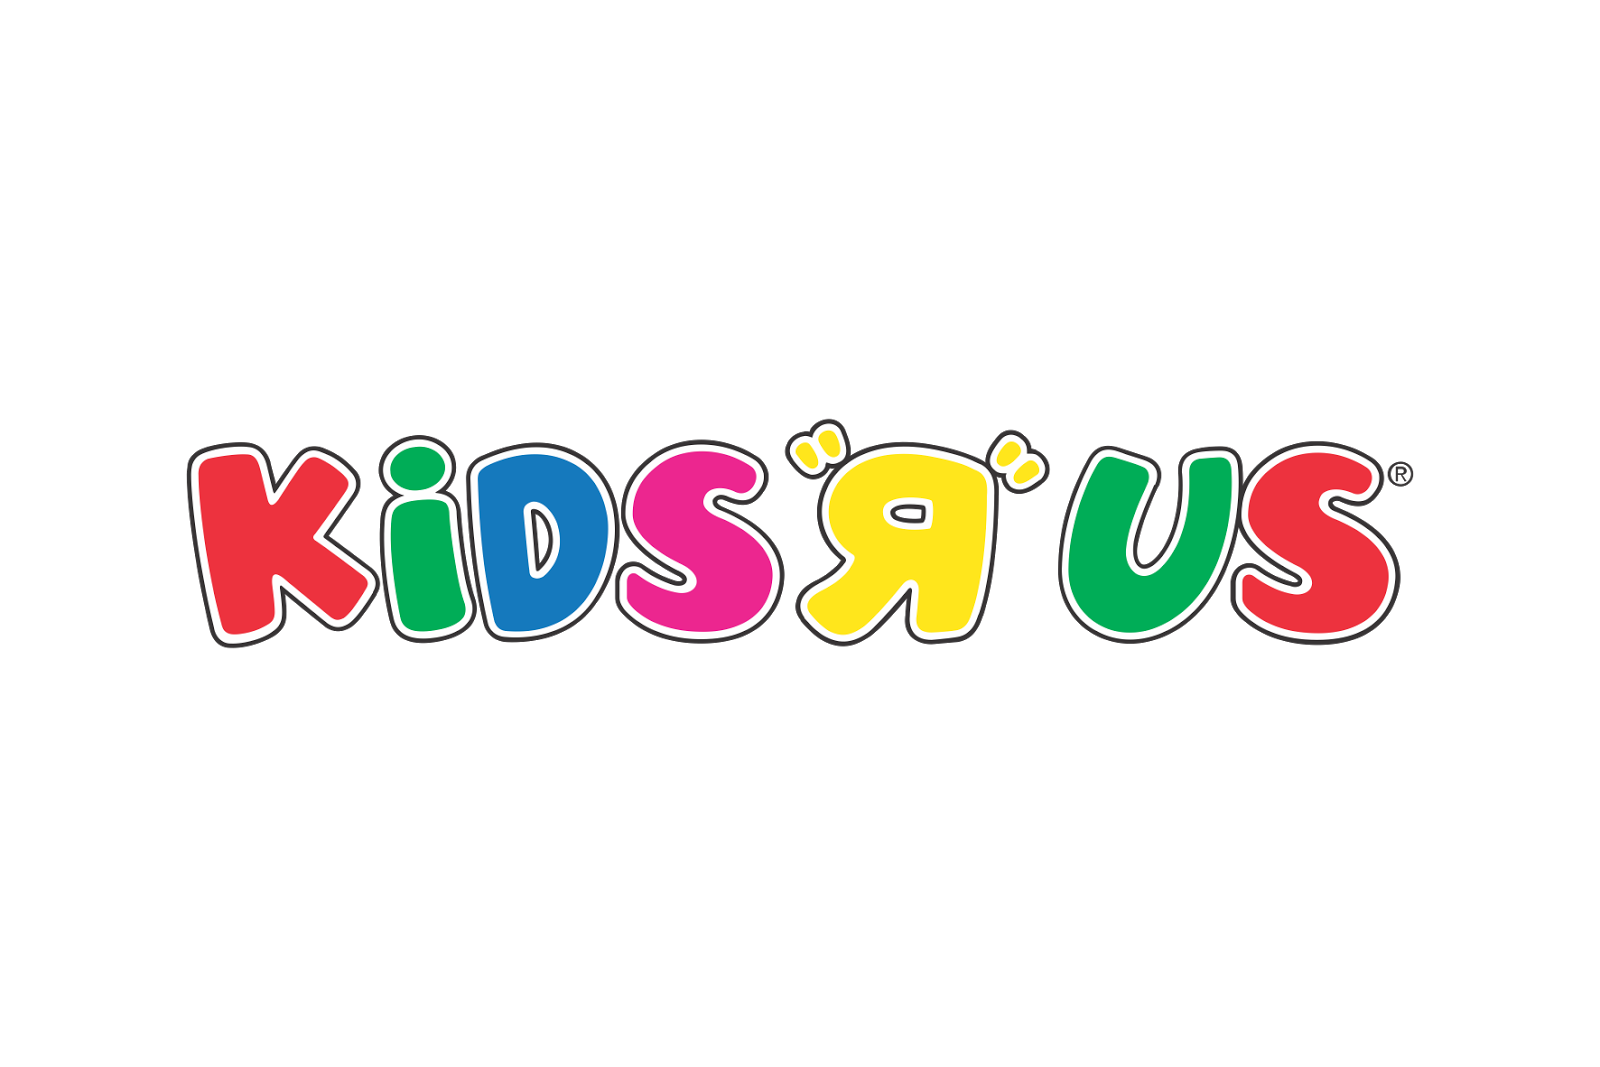 Kids r kids logo png. File us wikimedia commons